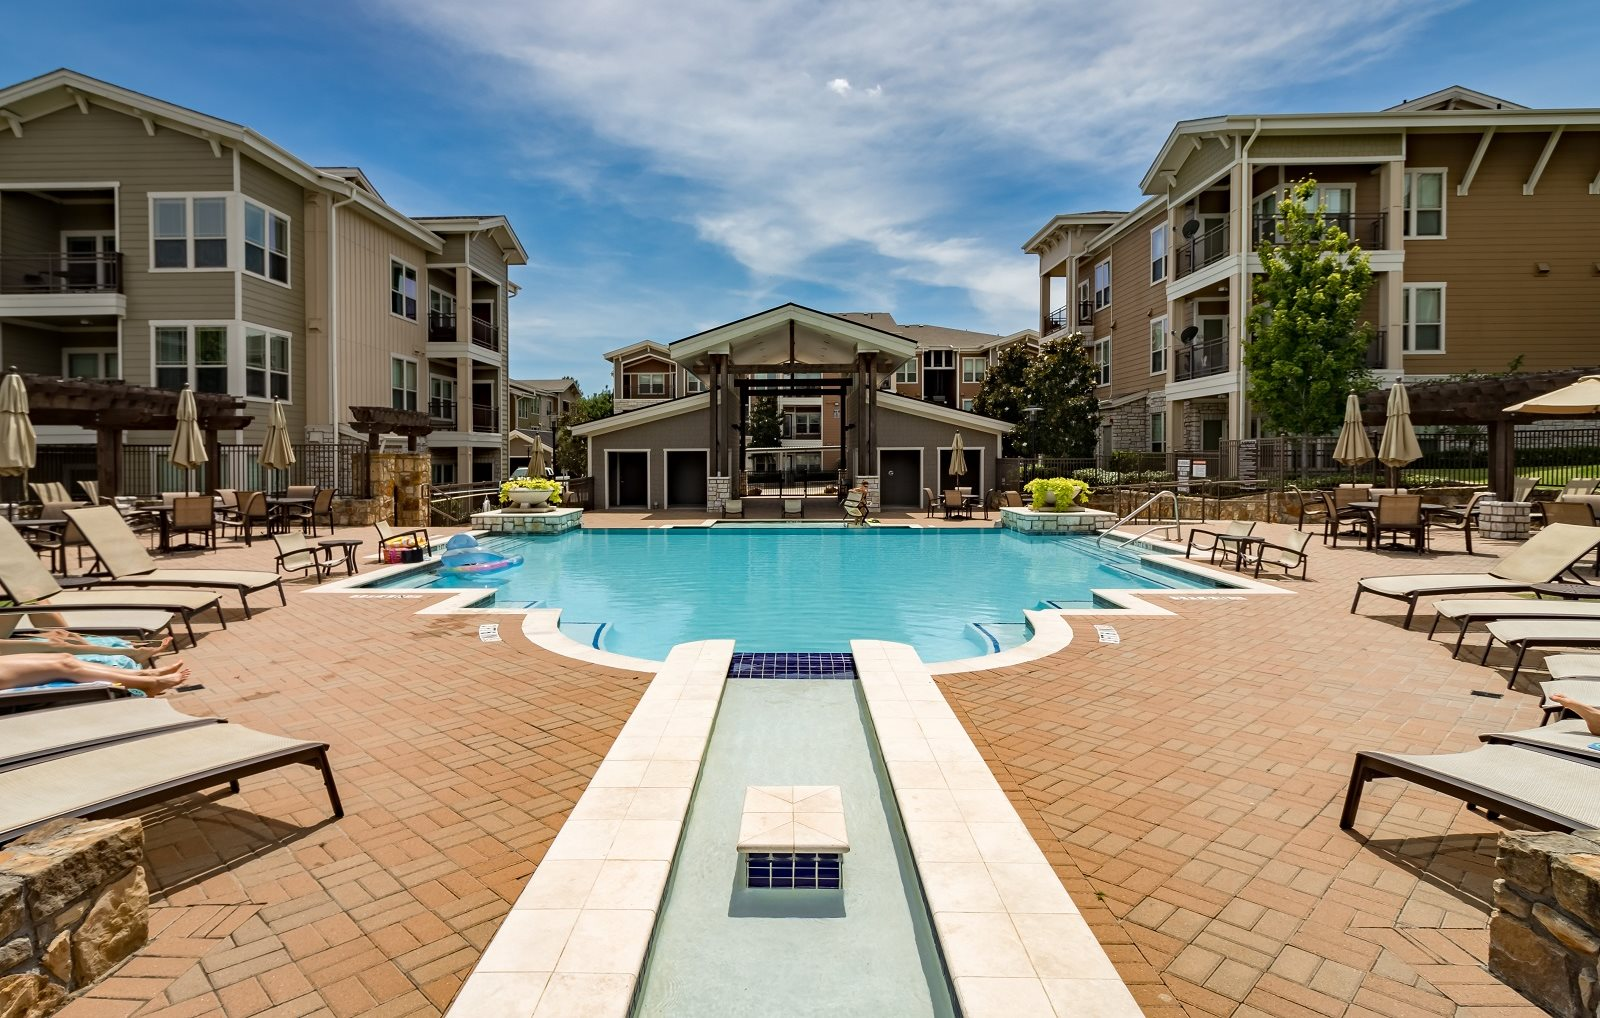 Lakewood flats apartments in dallas tx for Garden park apartments greenville tx